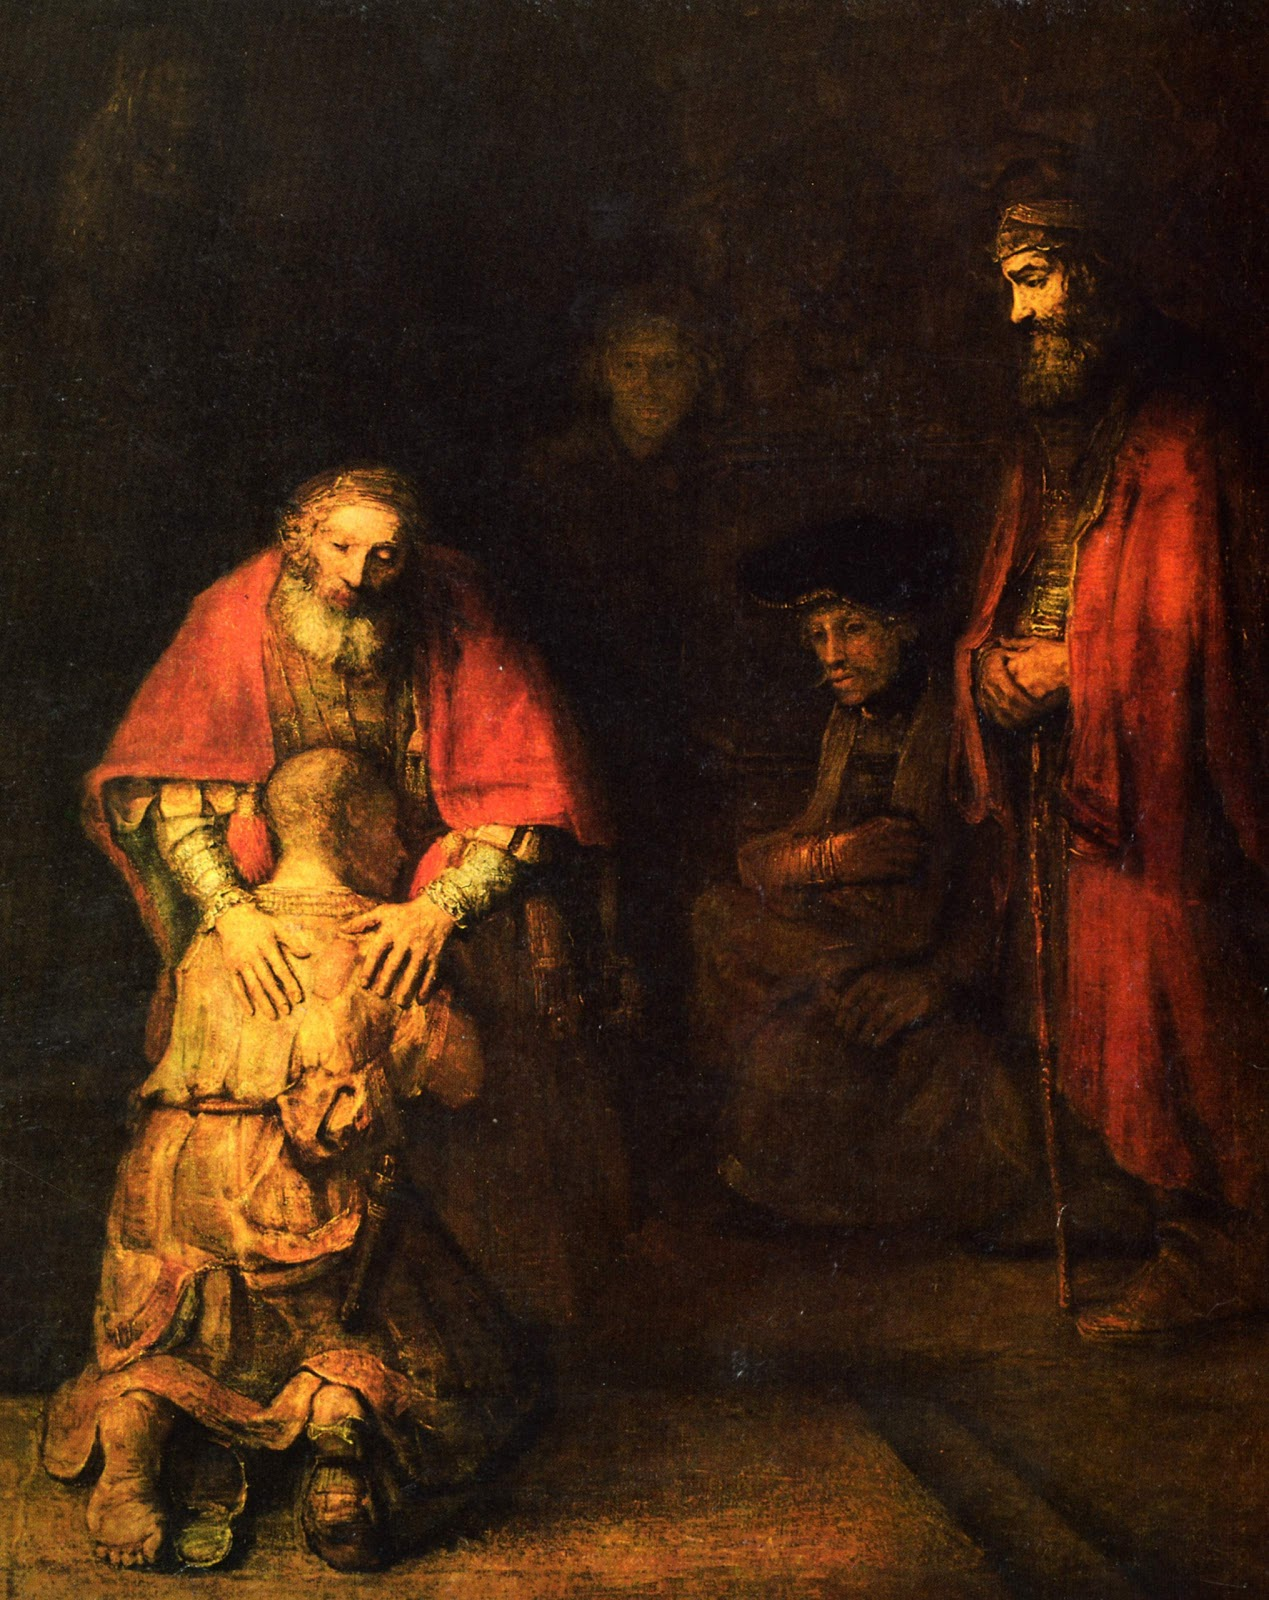 HEATHER KING: THE RETURN OF THE PRODIGAL SON